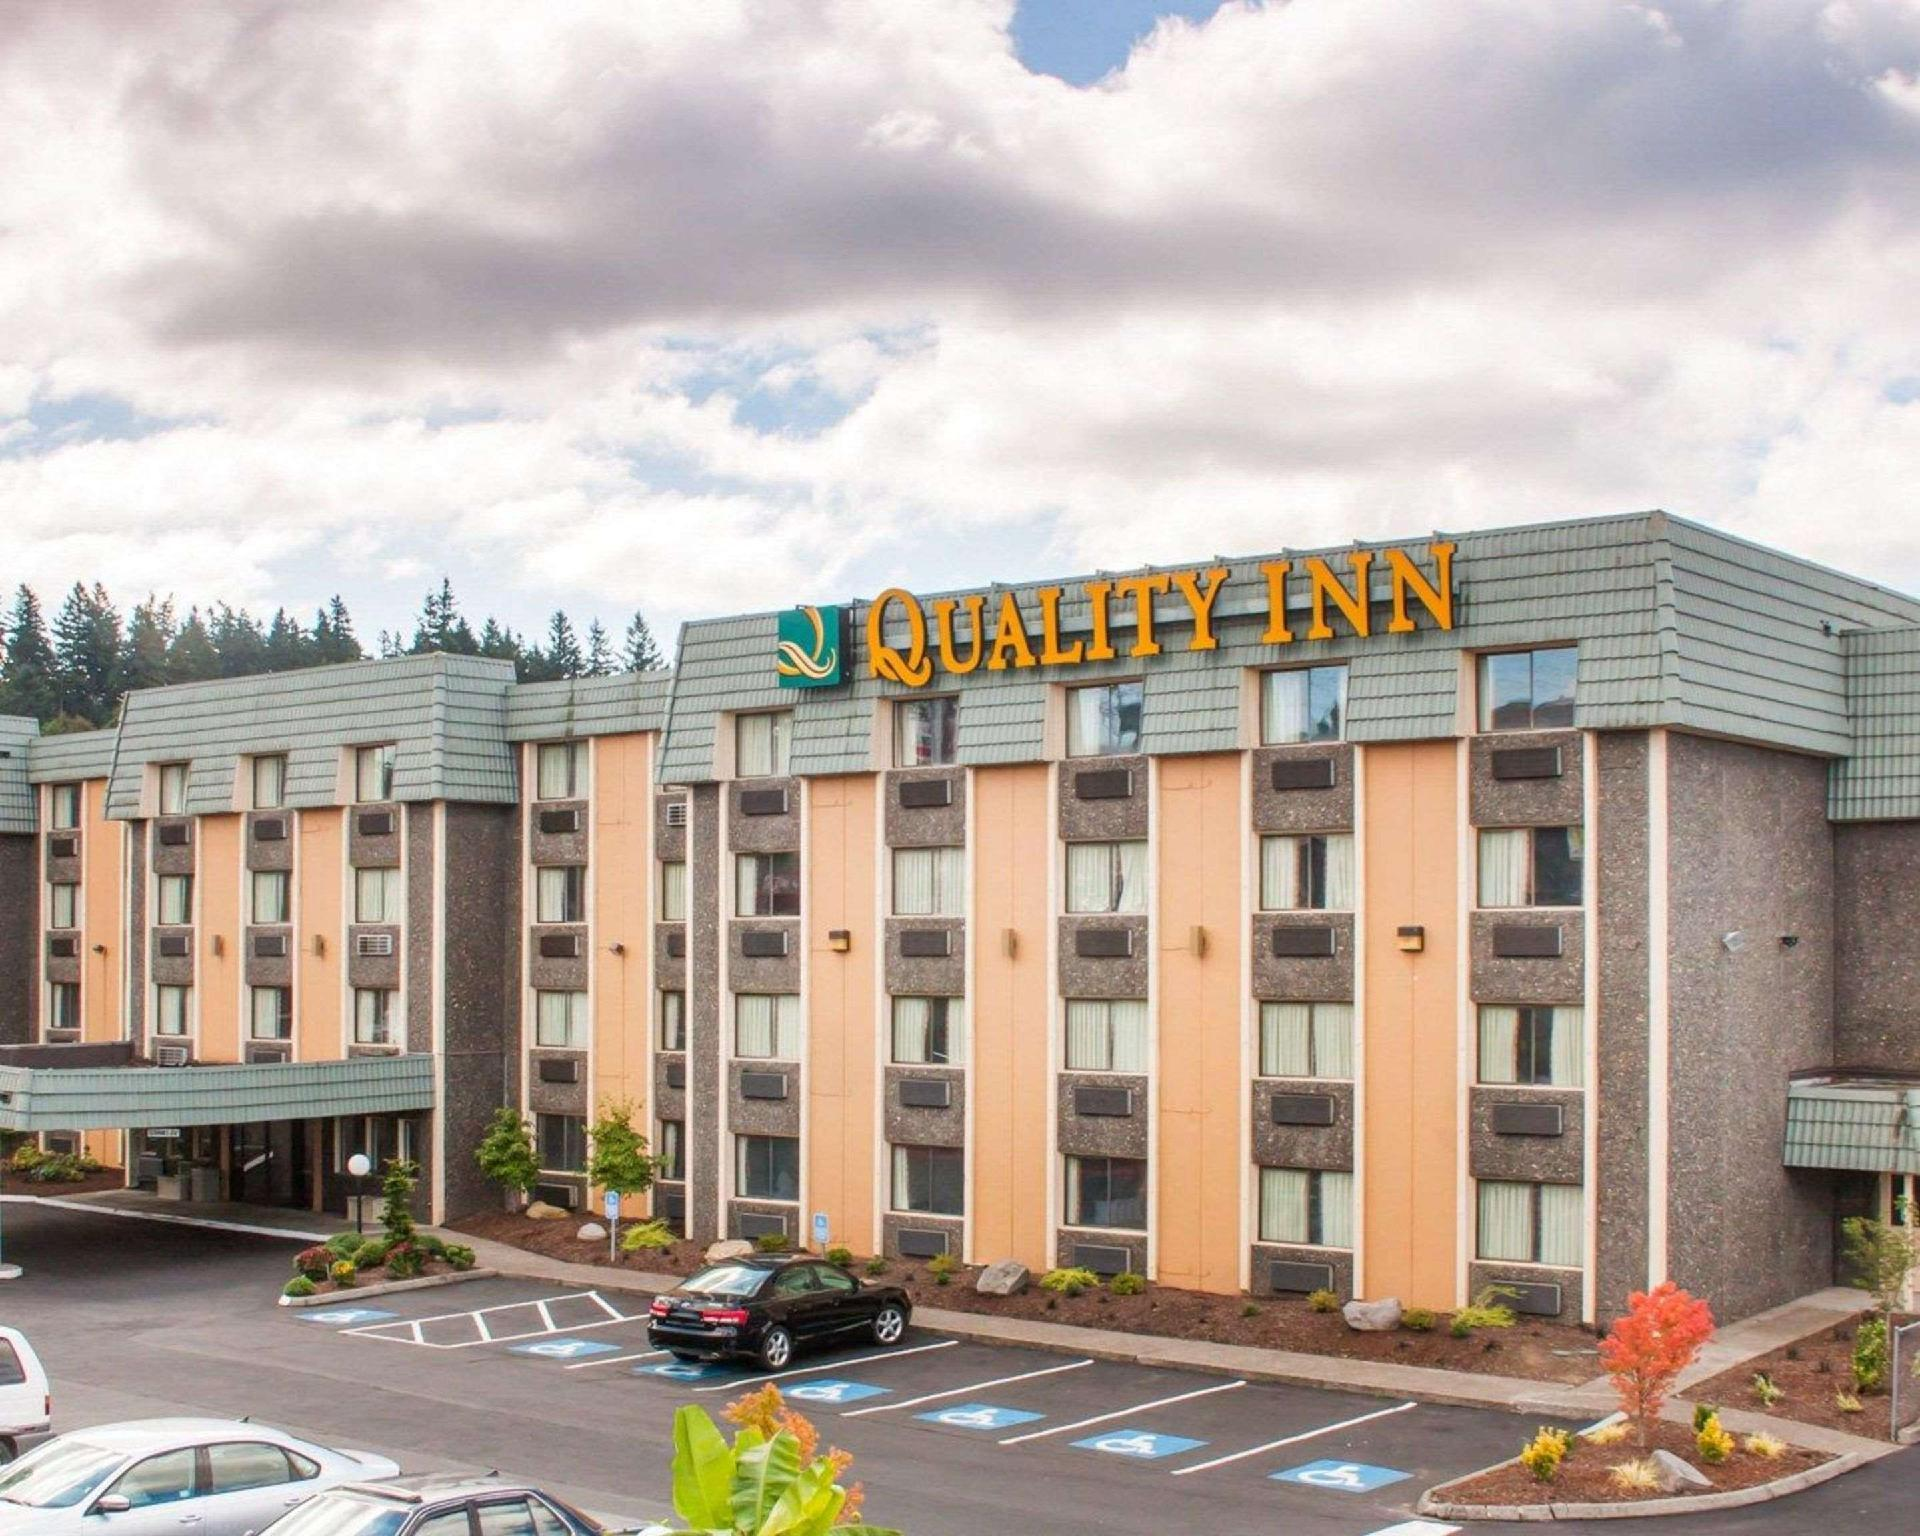 Hotels Review: Quality Inn Tigard – Portland Southwest – Pictures, Prices & Deals